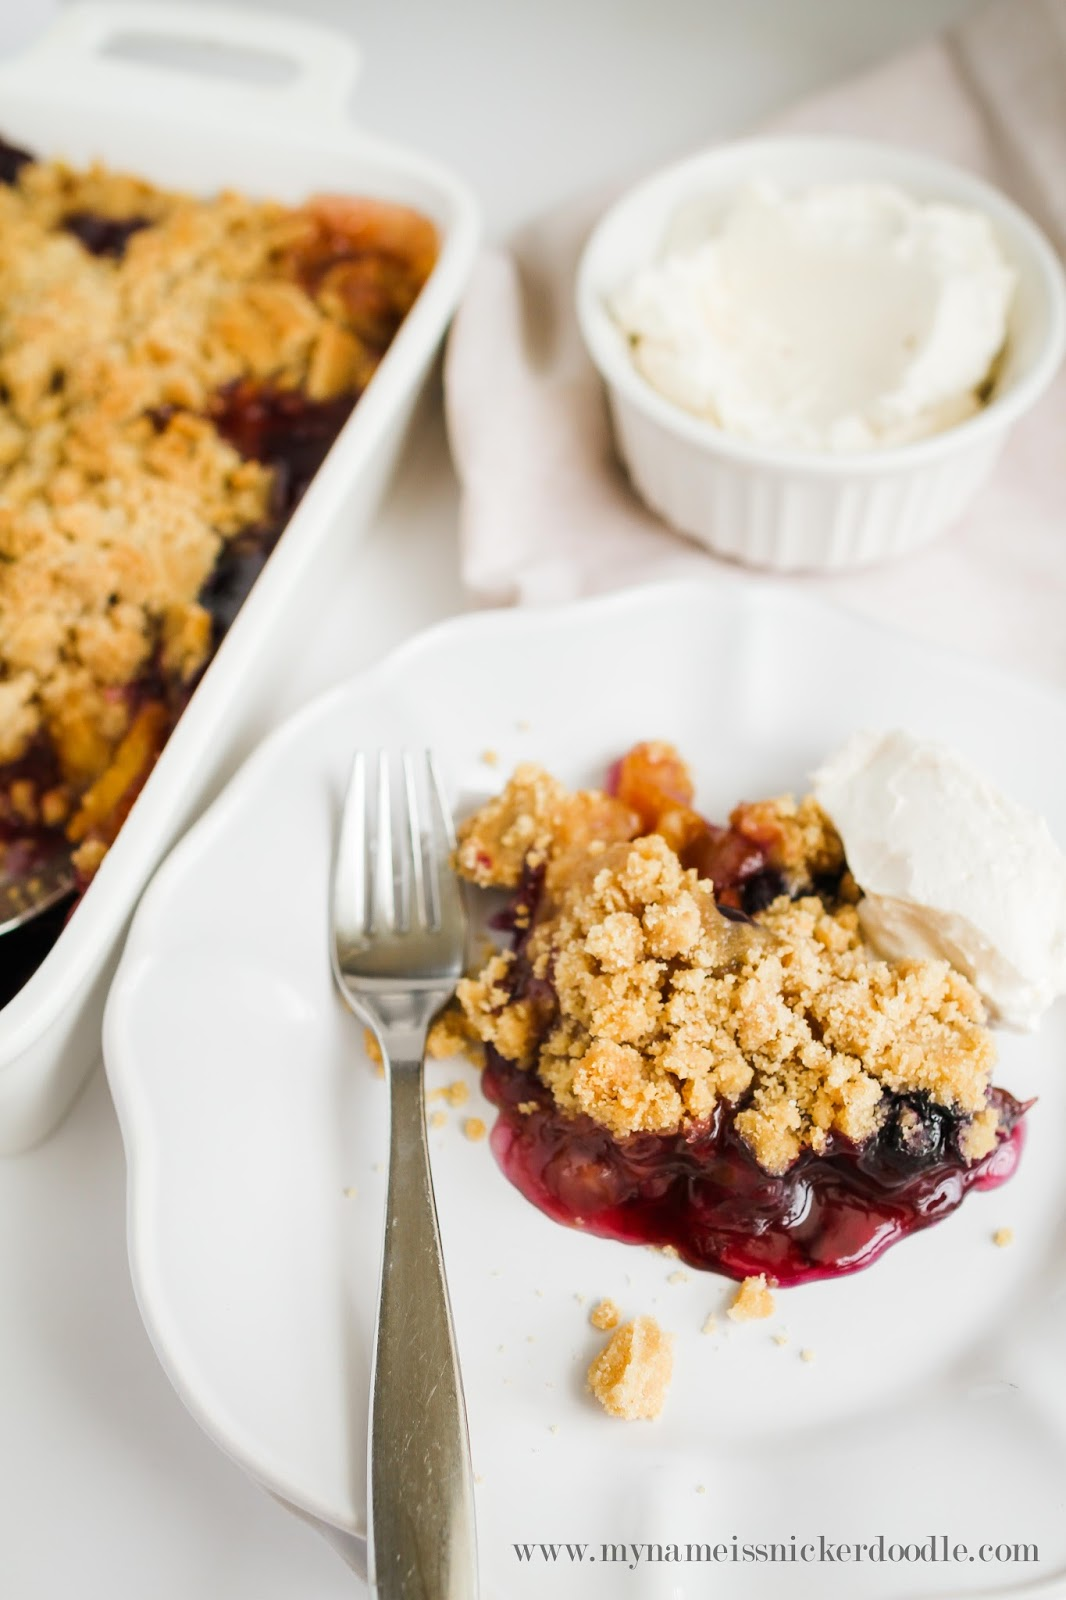 Fruity Peach and Blueberry Crisp Recipe